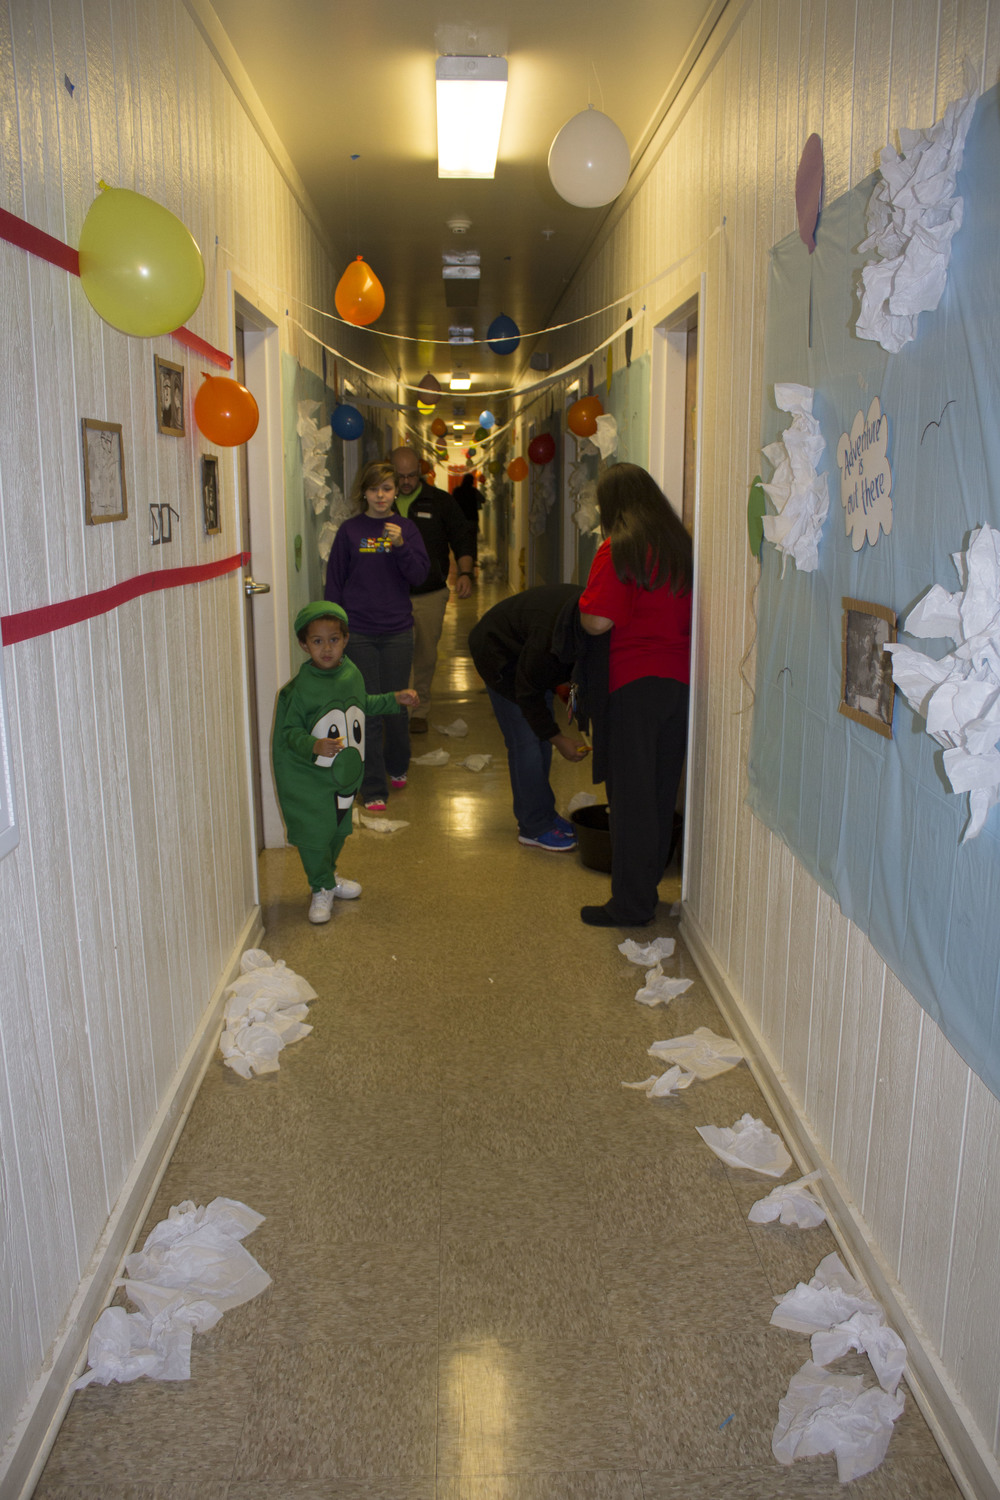 Kids loved walking in the sky surrounded by balloons when they went through Bottom Vandiver's hallway.